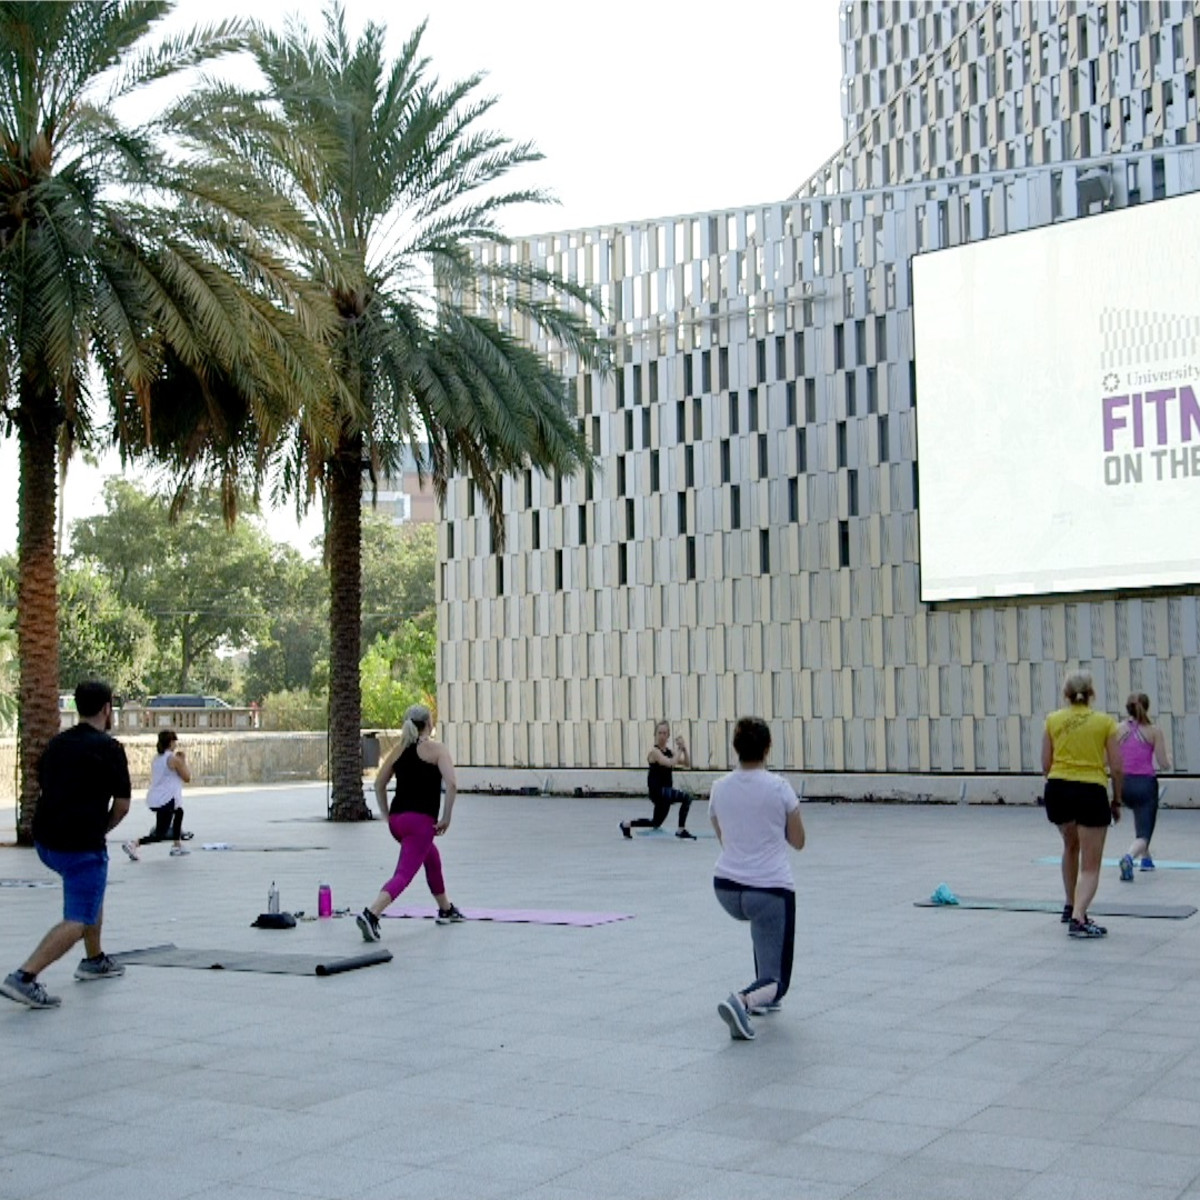 Frost SA Fitness on the Plaza